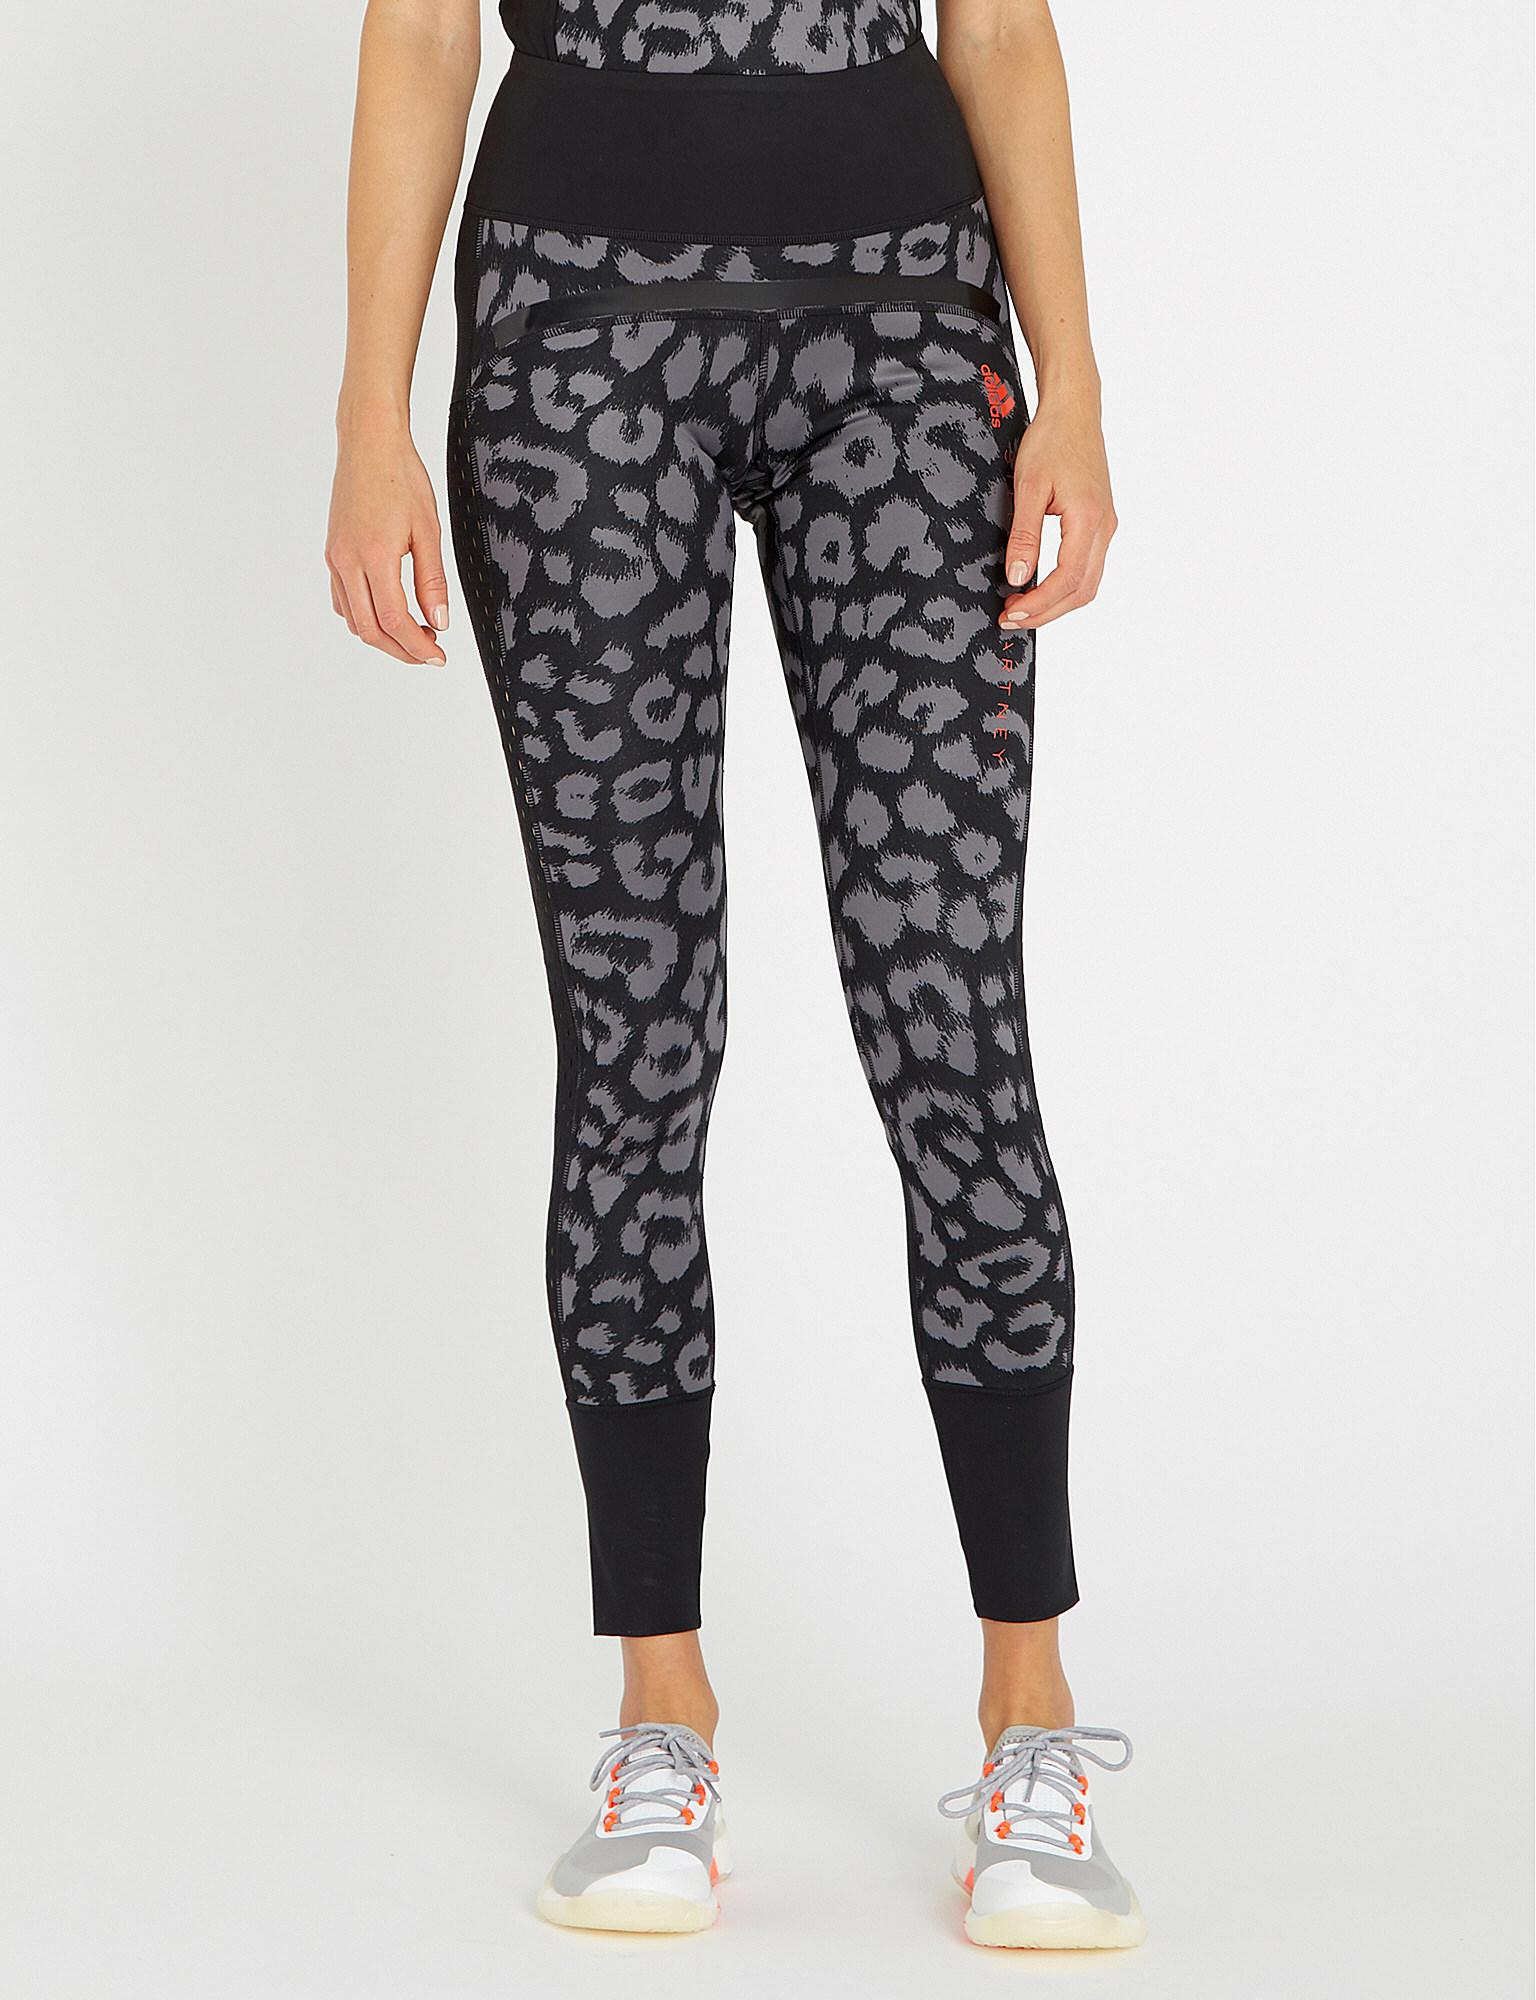 13bcaaf7e0aeb adidas By Stella McCartney. Women's Black Belive This Comfort Leopard-print  Stretch-jersey leggings